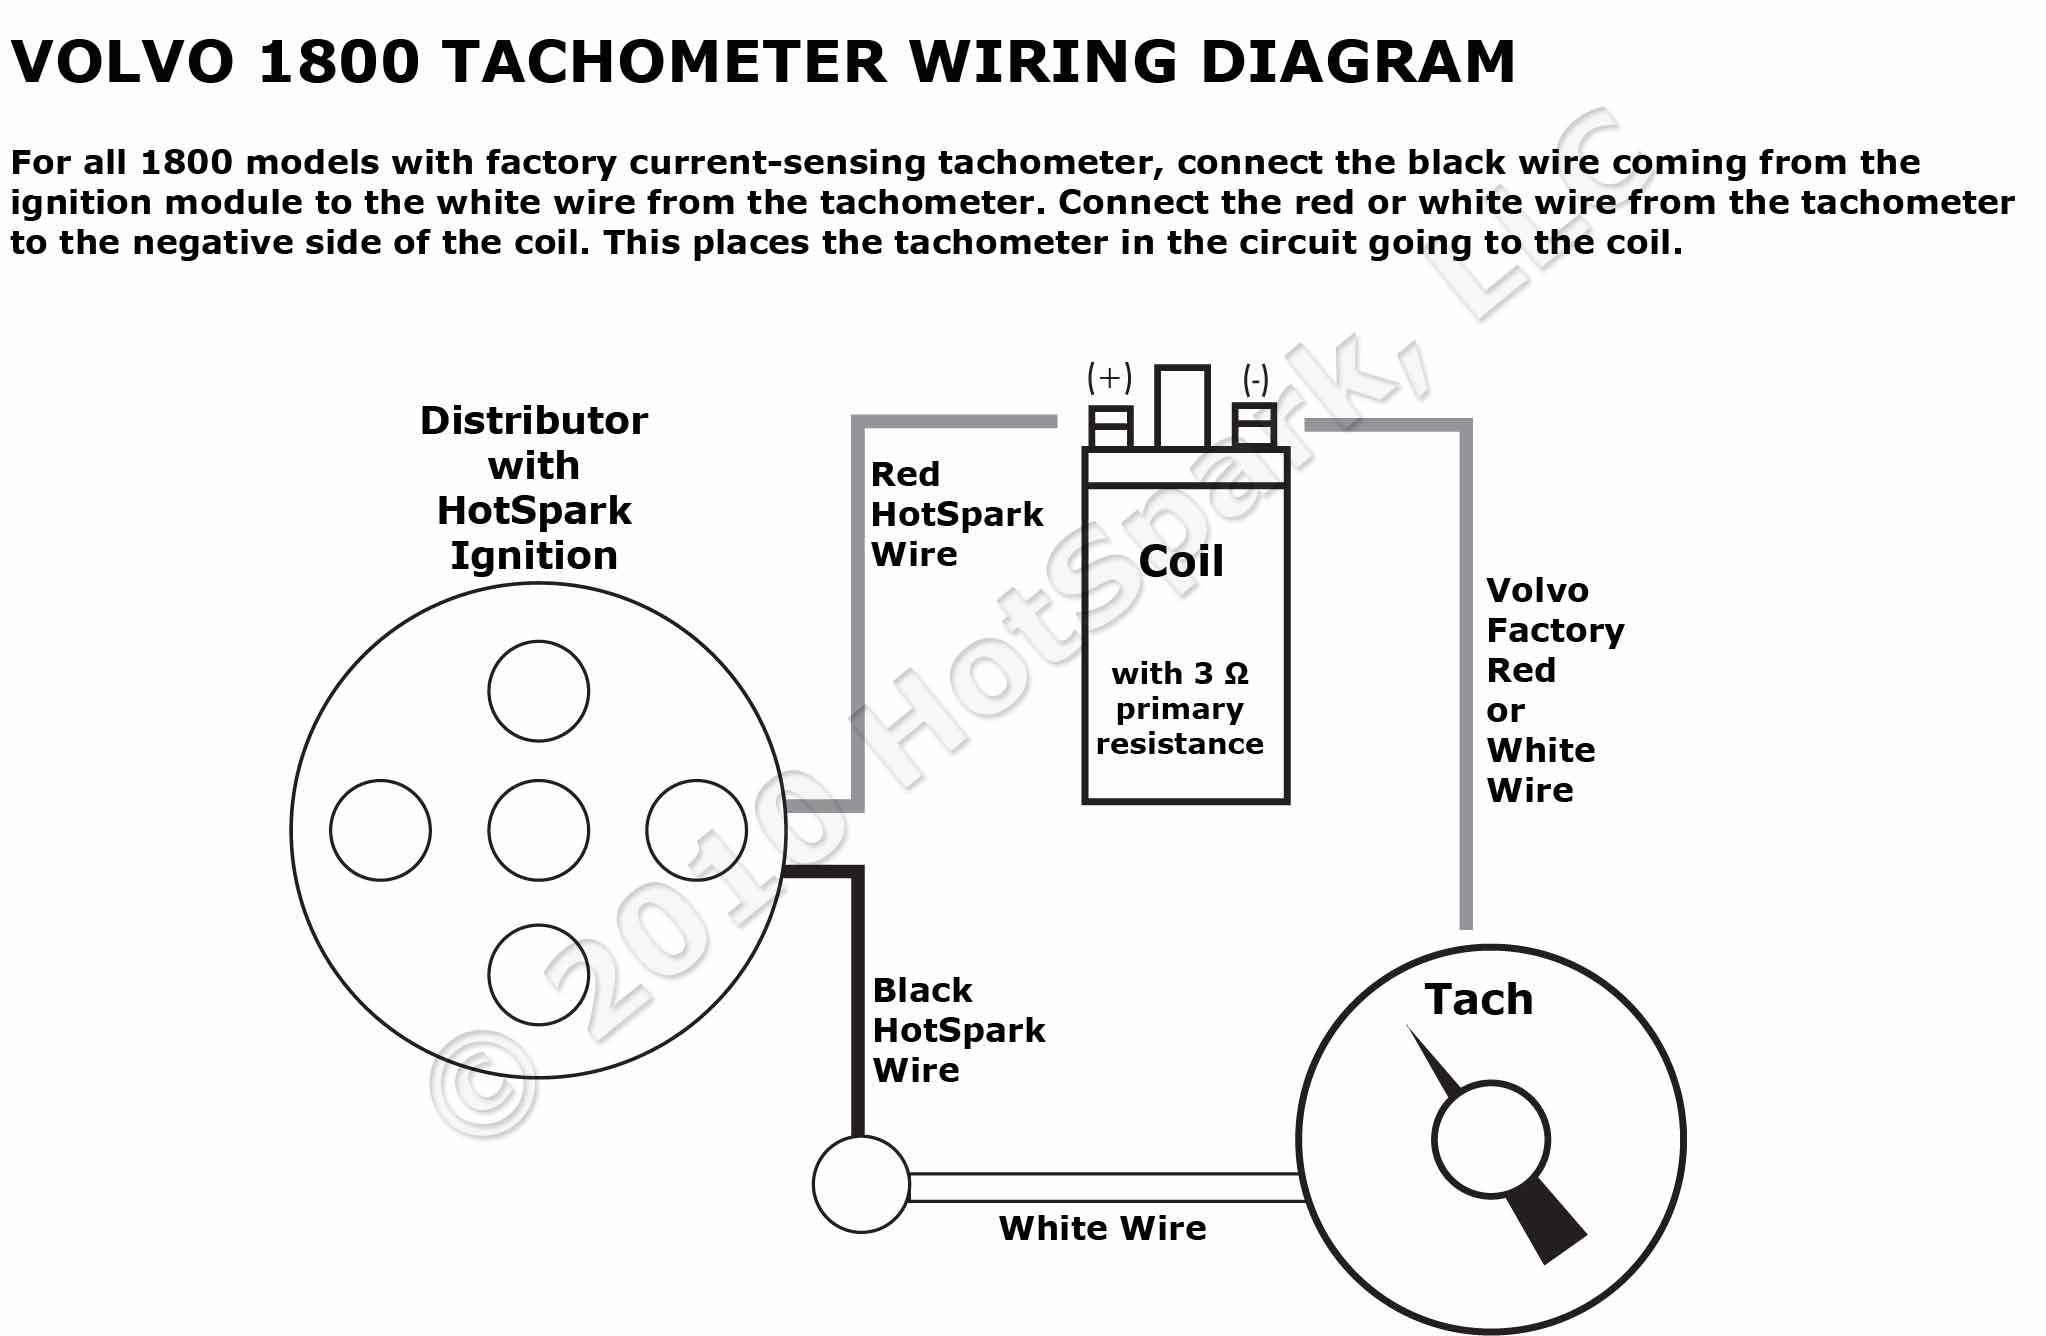 Volvo 1800 Tachometer and Hot Spark Wiring Diagram tach wiring diagram autometer tach wiring diagram \u2022 wiring  at soozxer.org